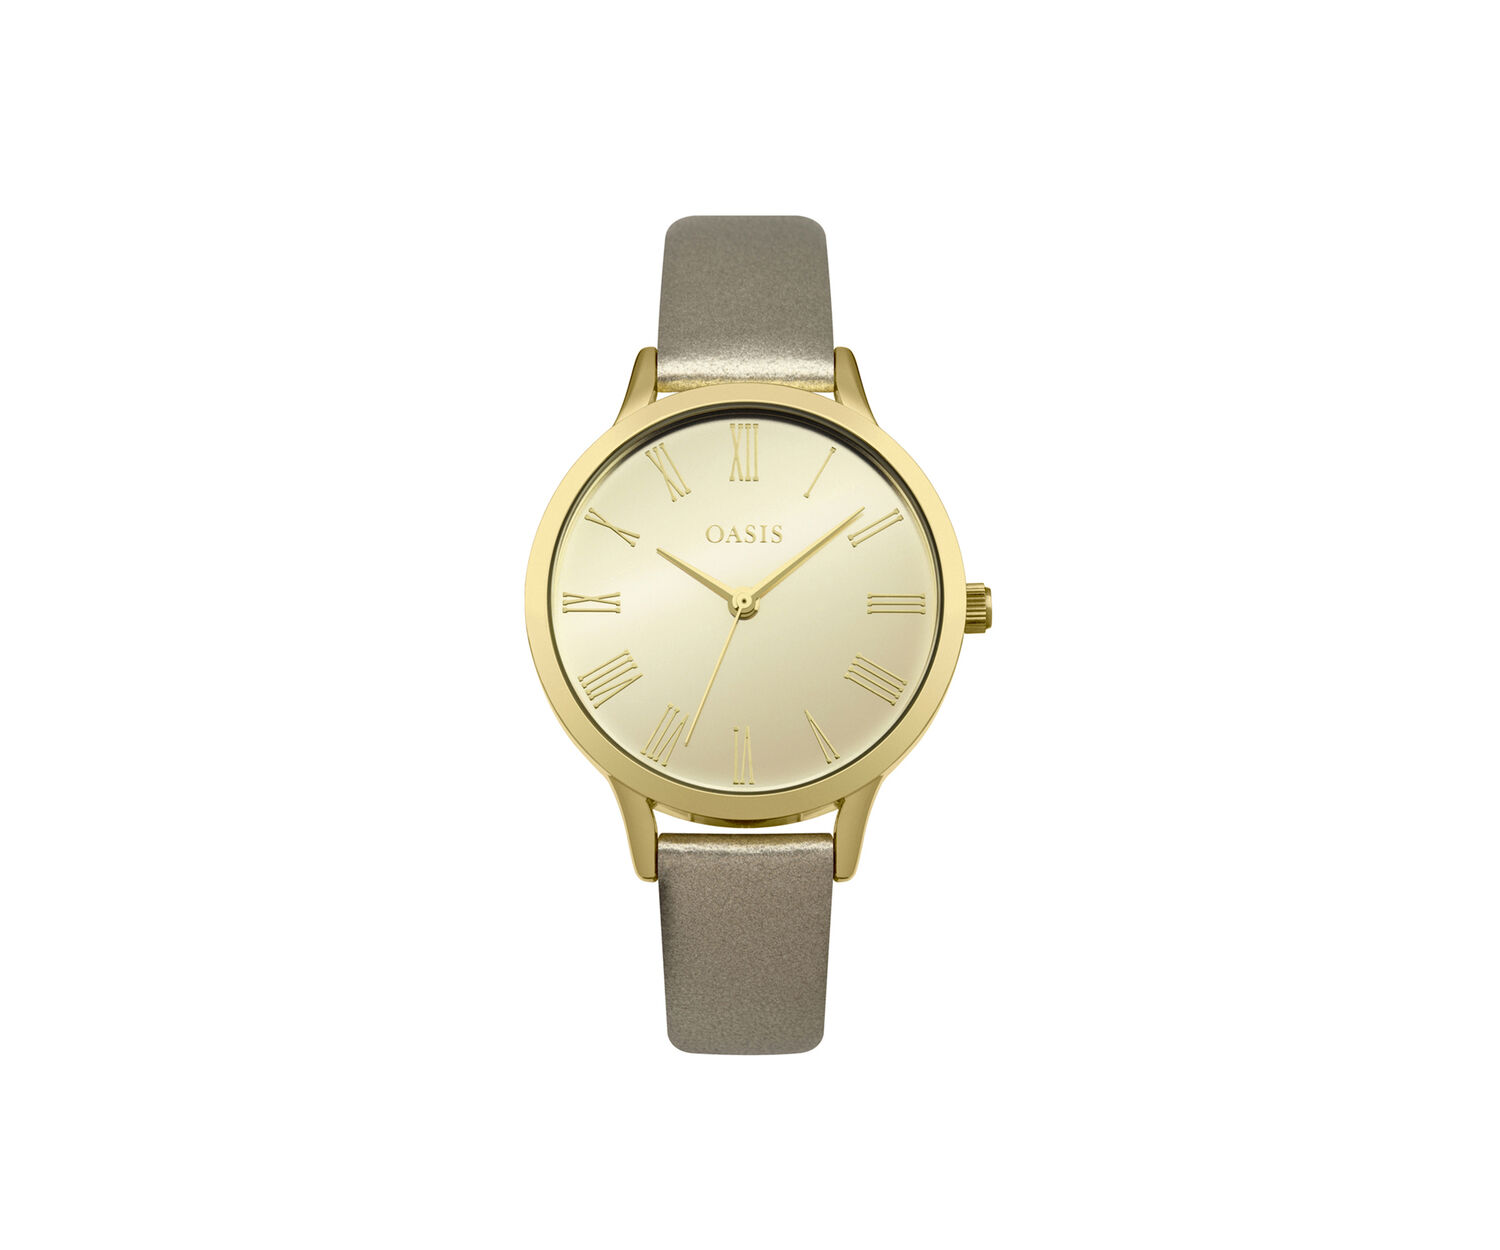 Oasis, OASIS DIAL WATCH Gold 1